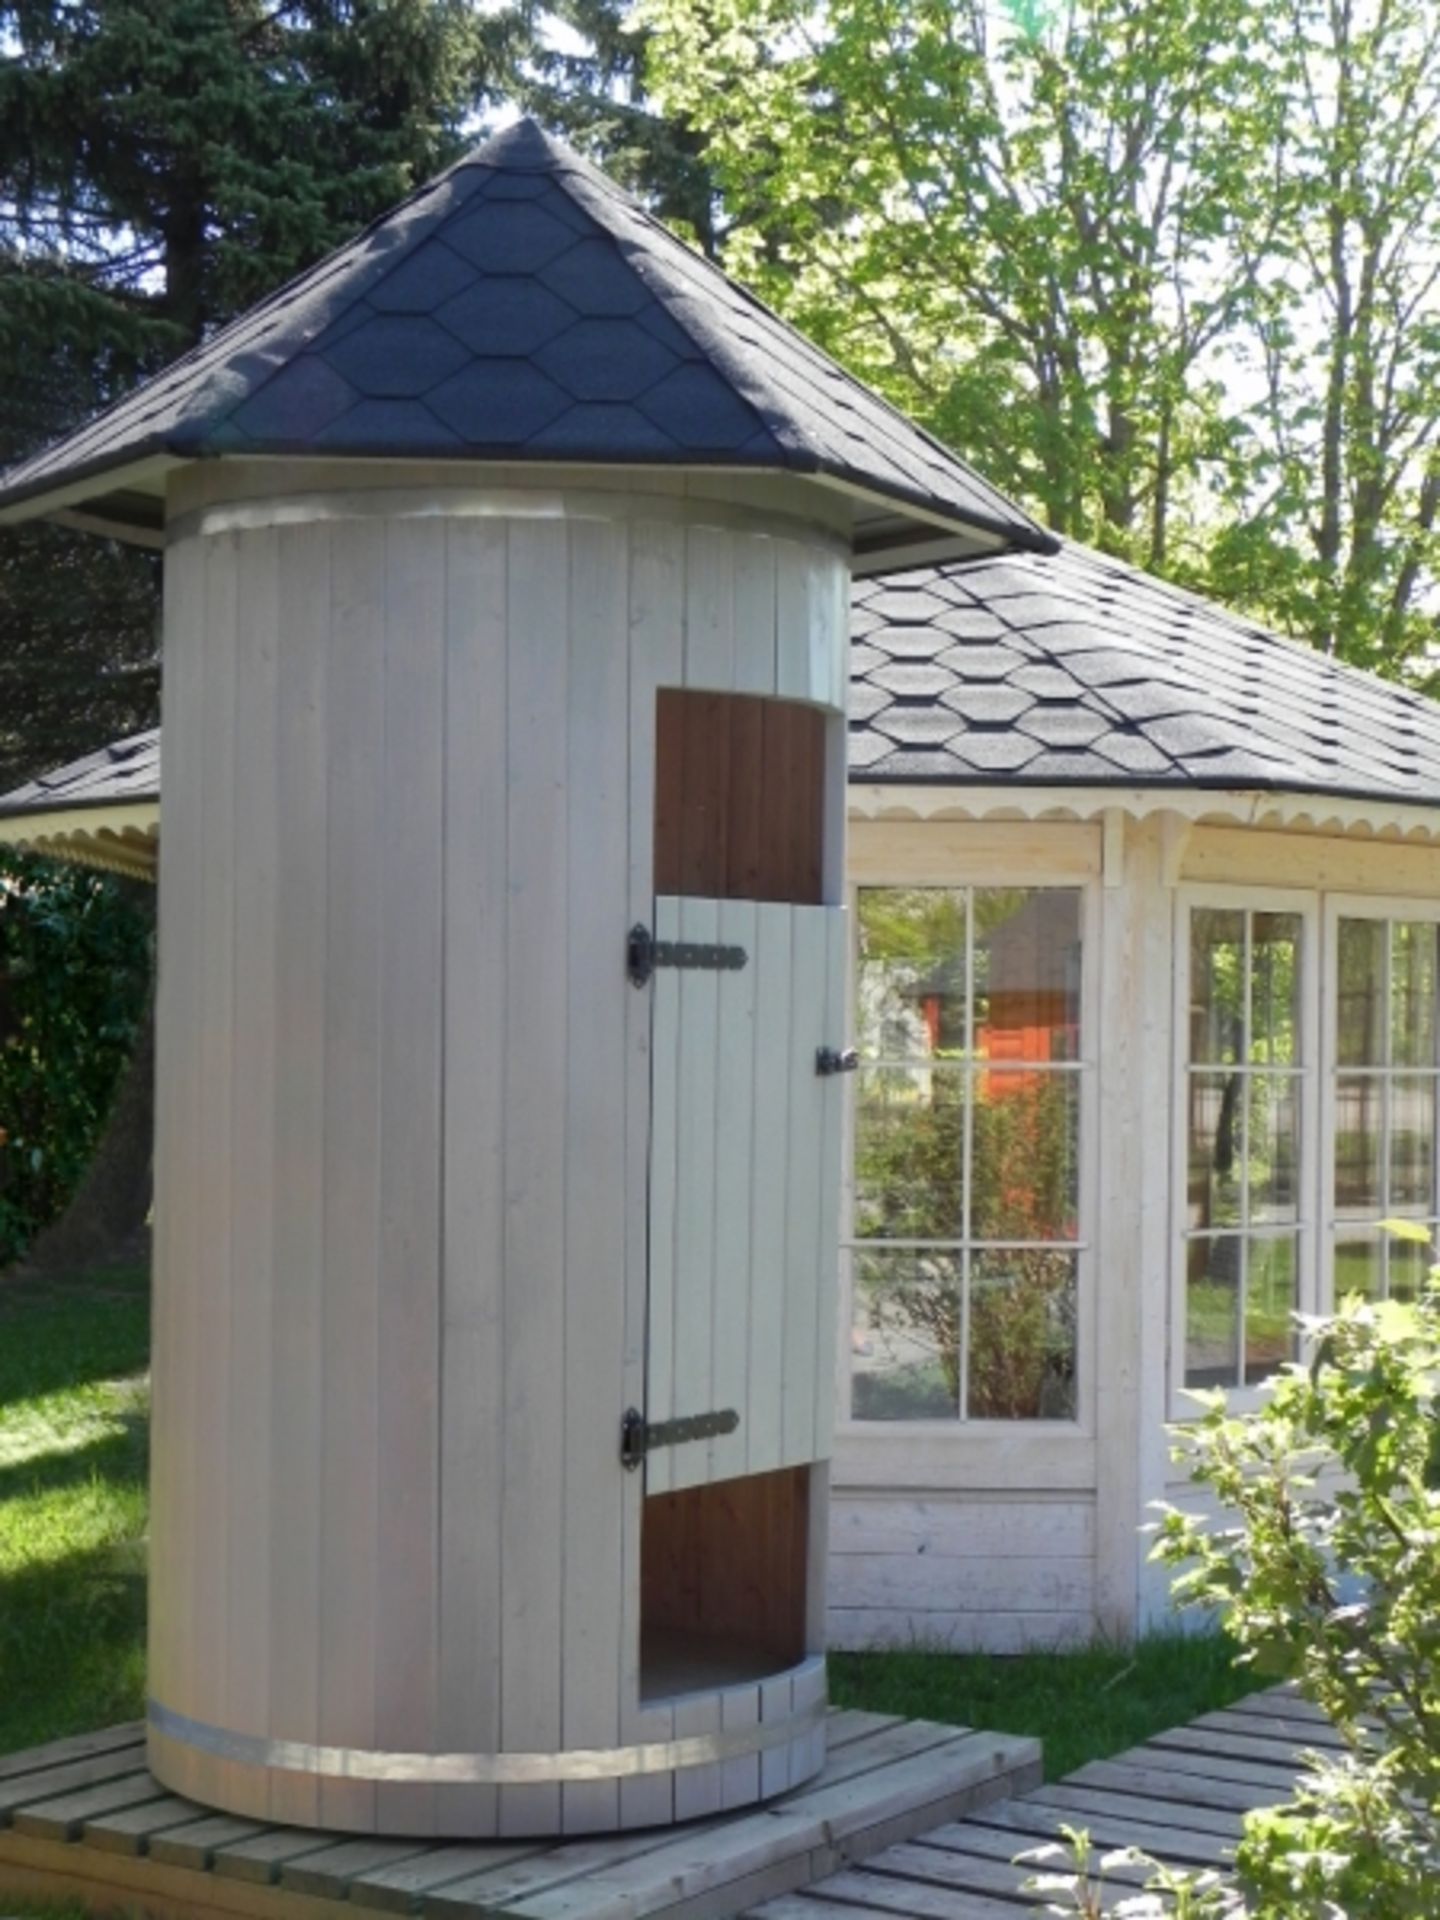 Lot 18054 - V Brand New 1.2m Shower Room - Total Height 3m - Height To Roof 2.3m - Roof Is Covered In Bitumen